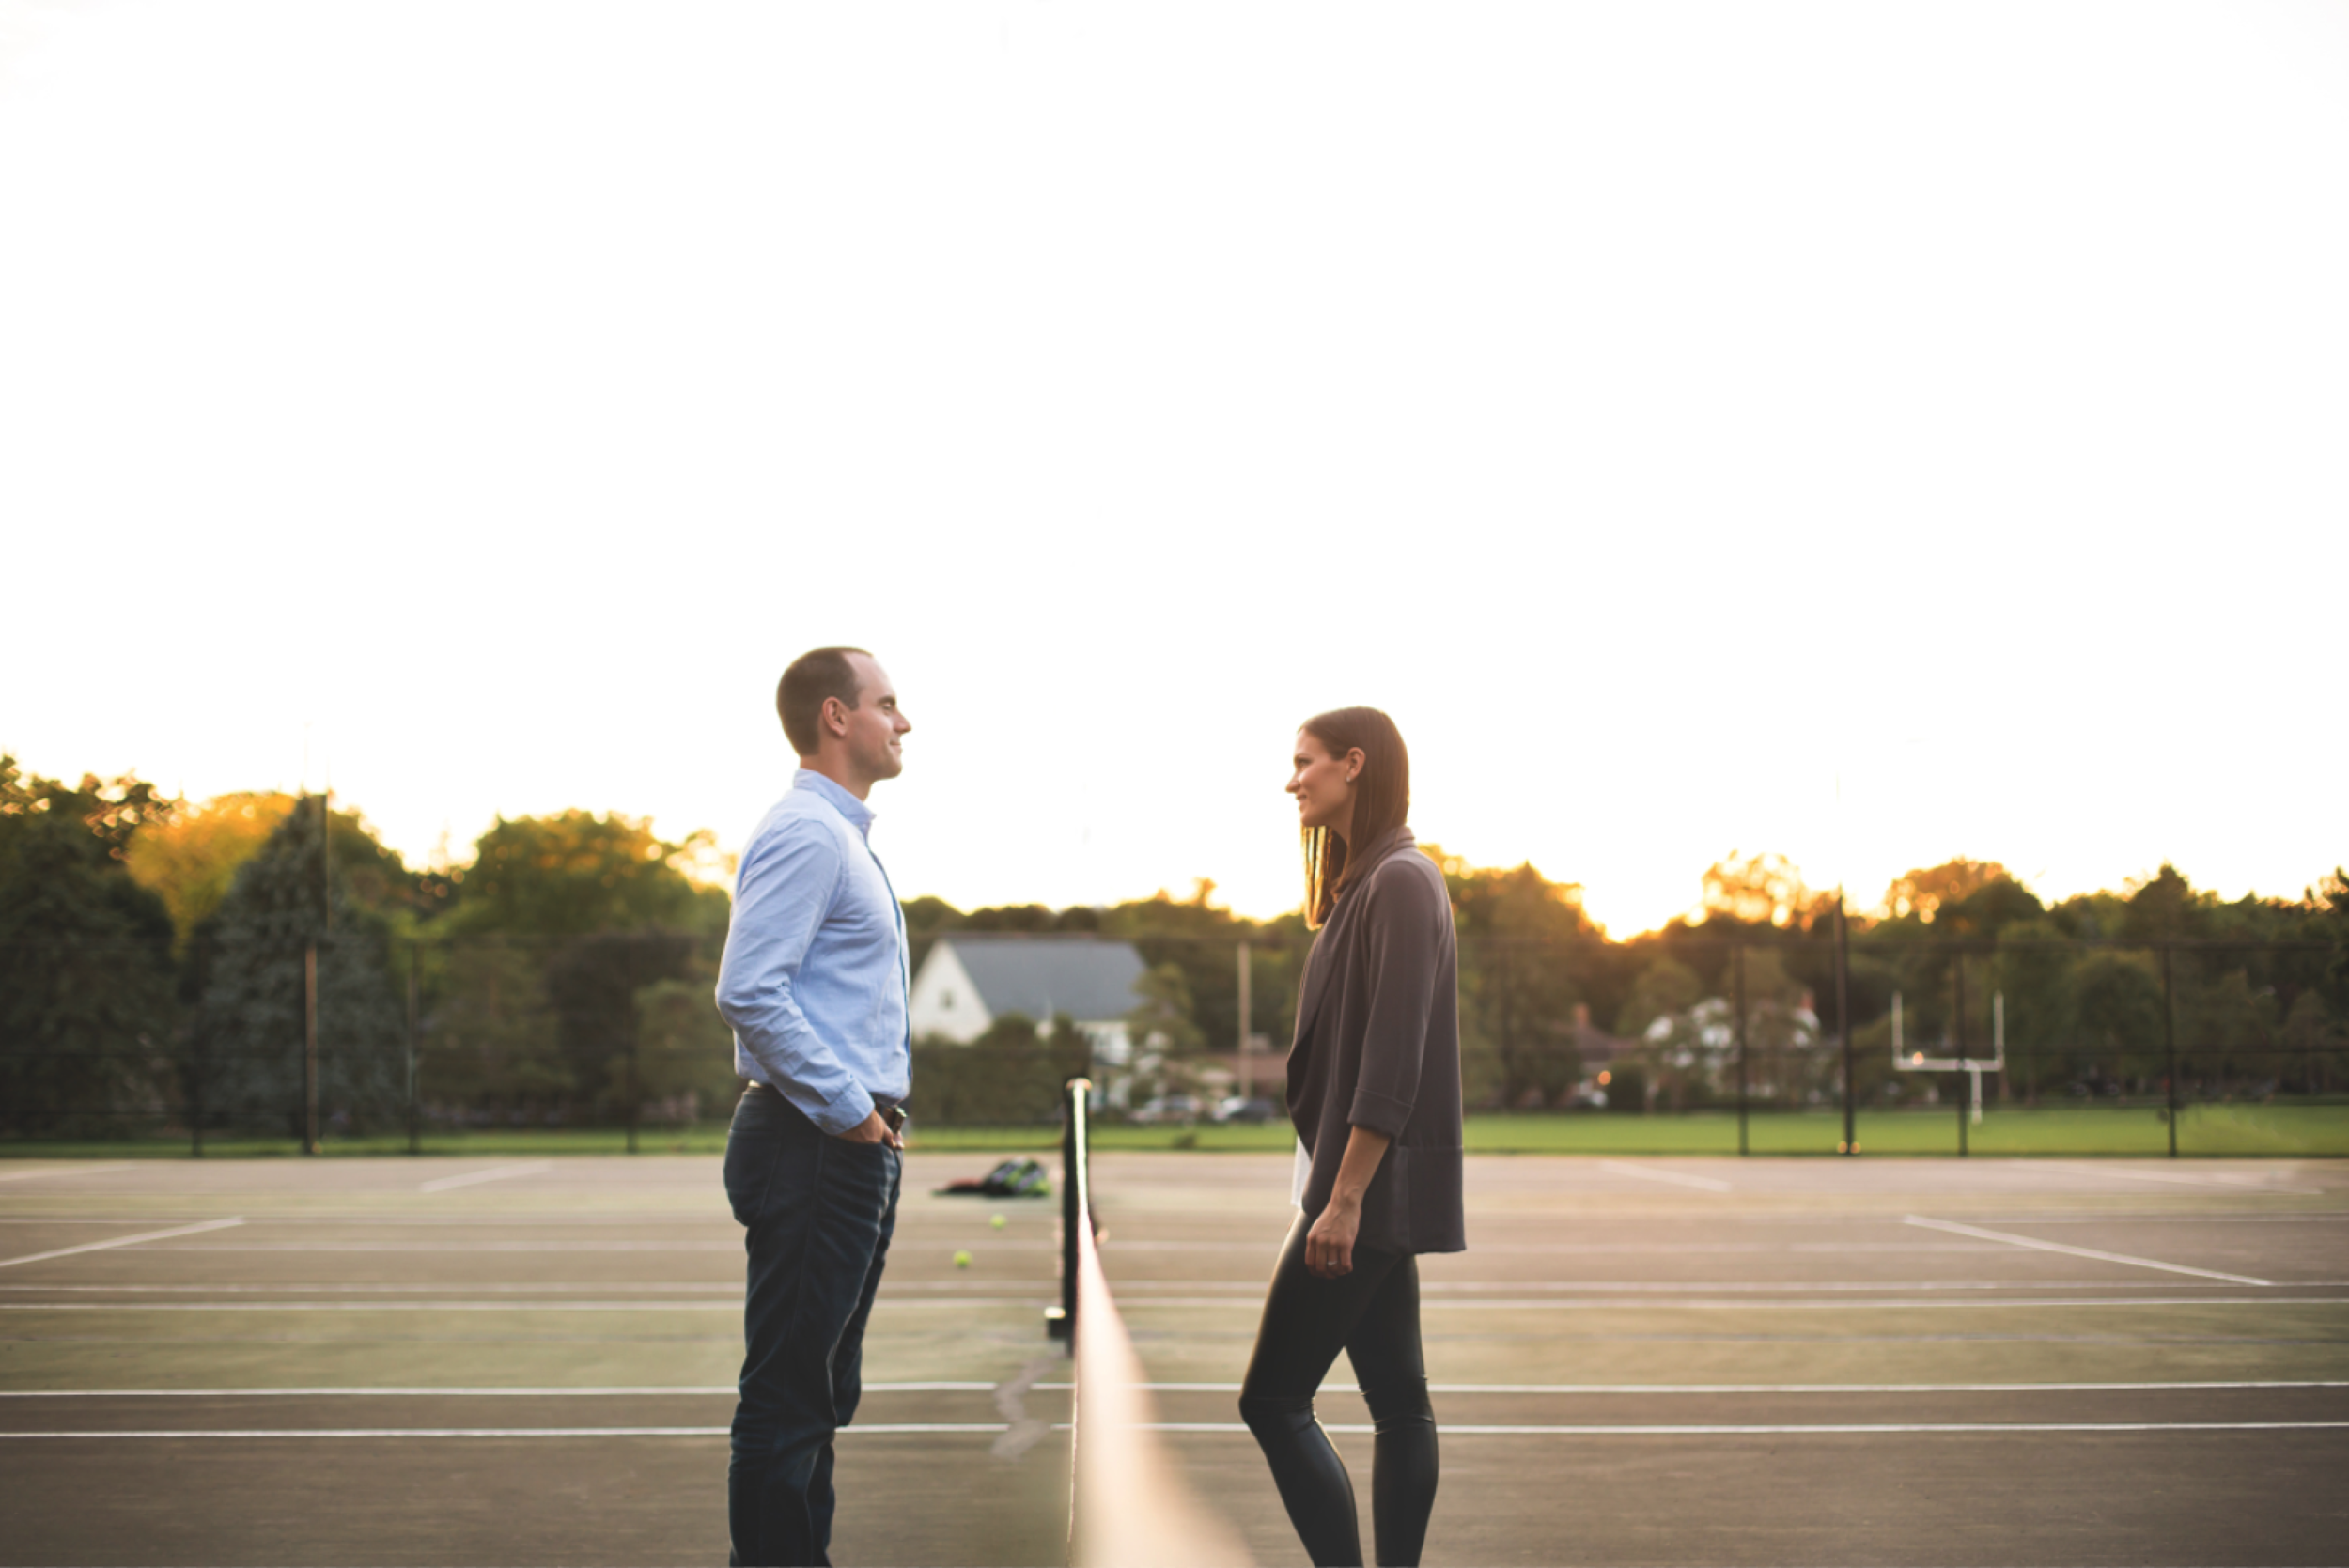 Engagement-Photos-Guelph-Park-Photographer-Wedding-Hamilton-GTA-Niagara-Oakville-Guelph-Tennis-Court-Basketball-Modern-Moments-by-Lauren-Engaged-Photography-Photo-Image-3.png